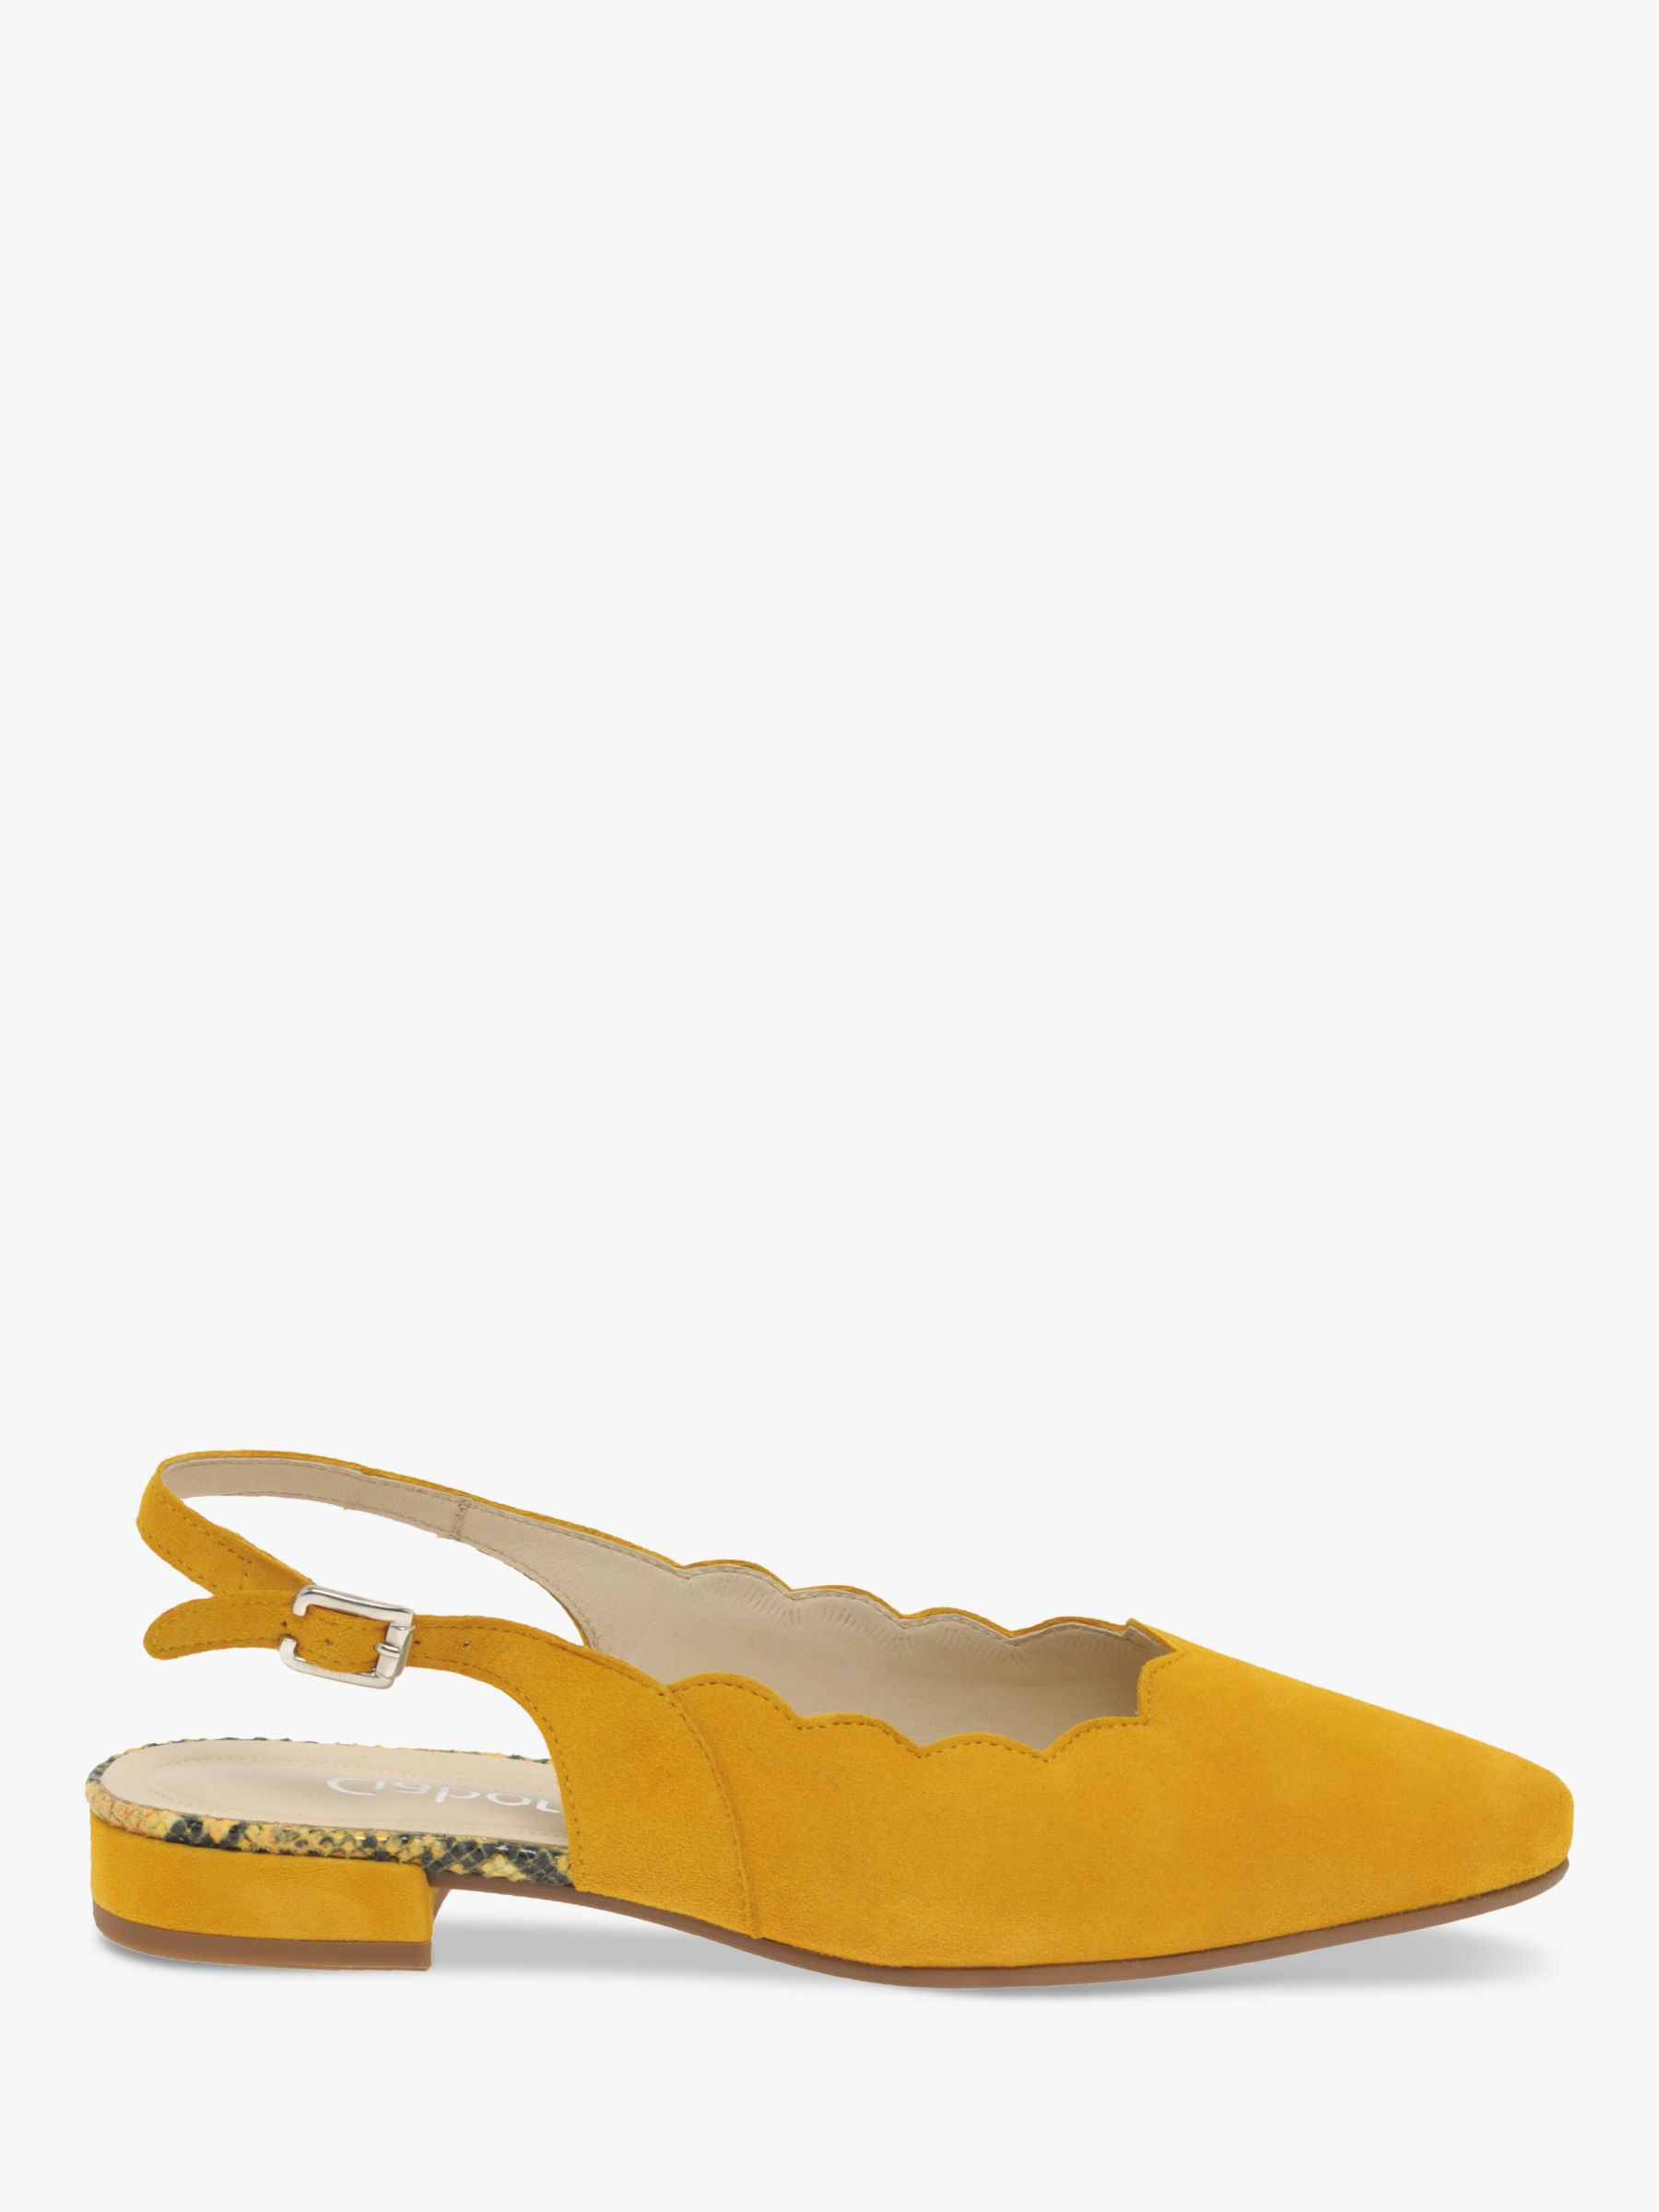 Gabor Gabor Maple Wide Fit Suede Slingback Court Shoes, Yellow